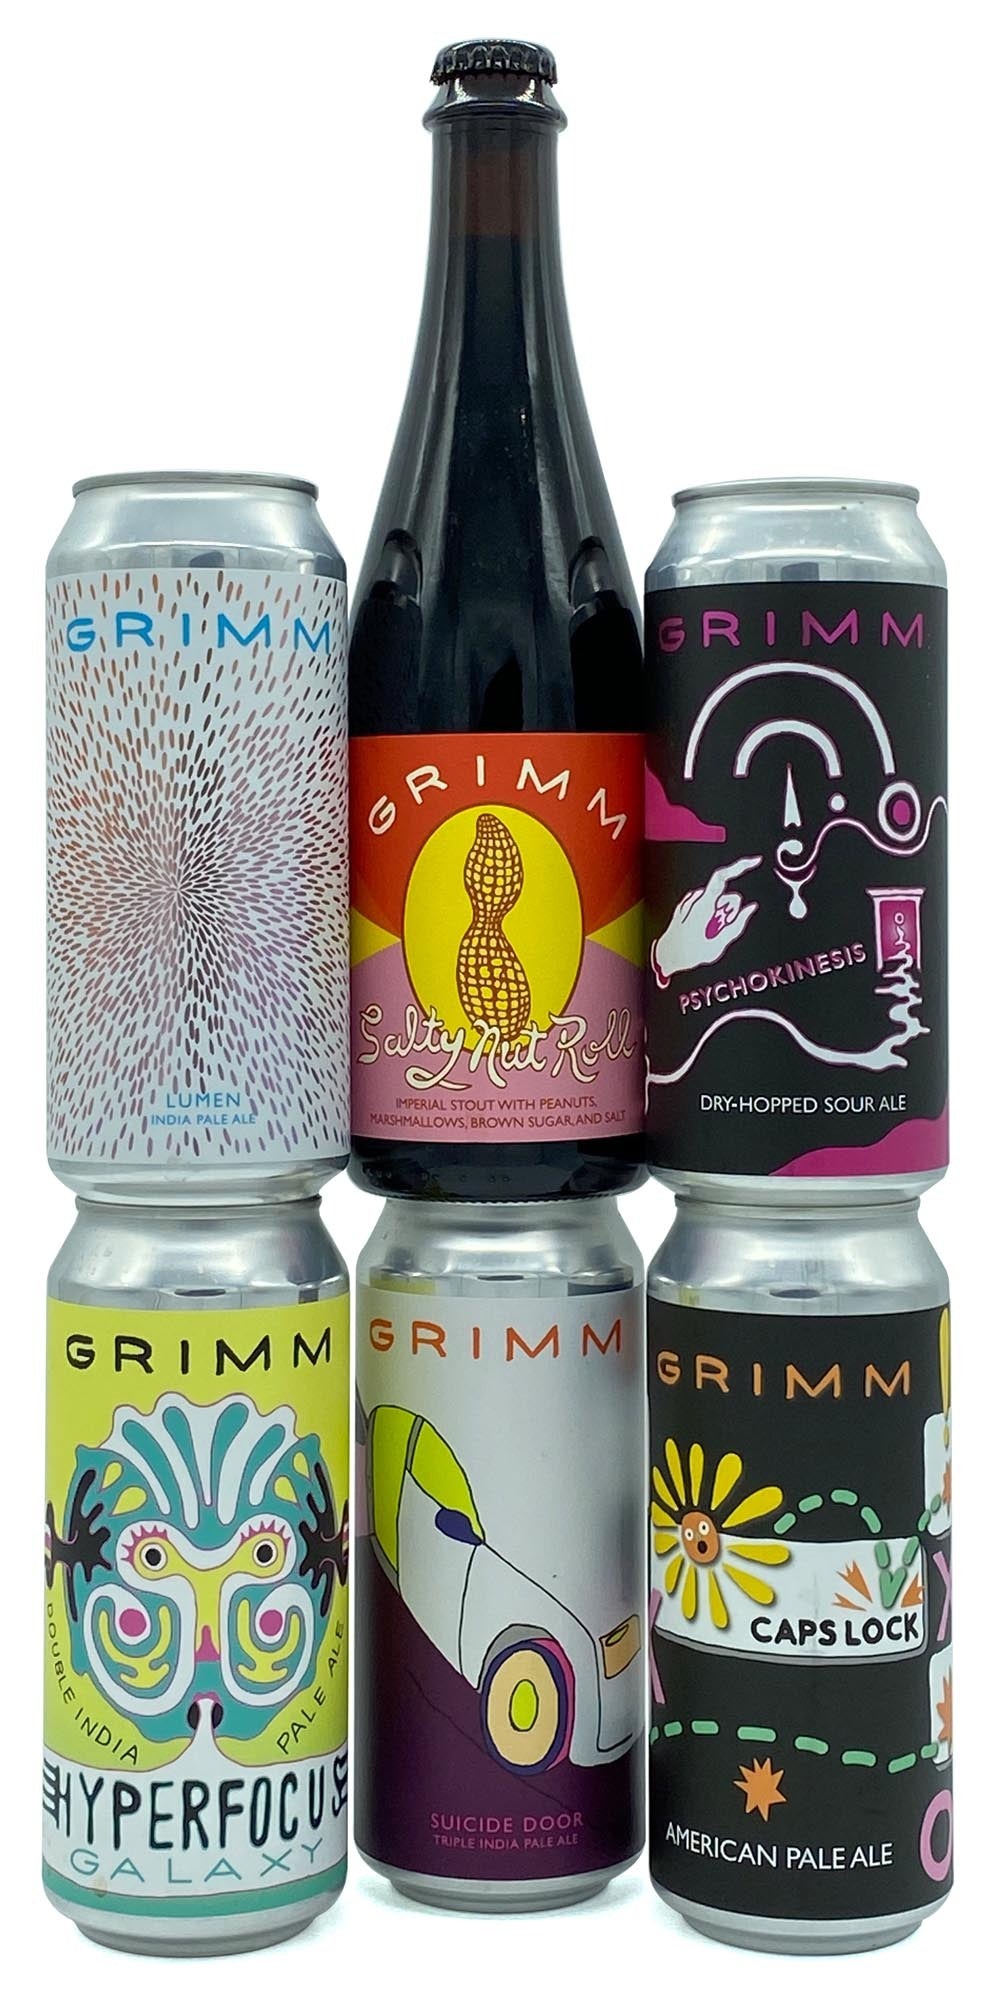 Grimm Artisanal Ales - September '20 Bundle